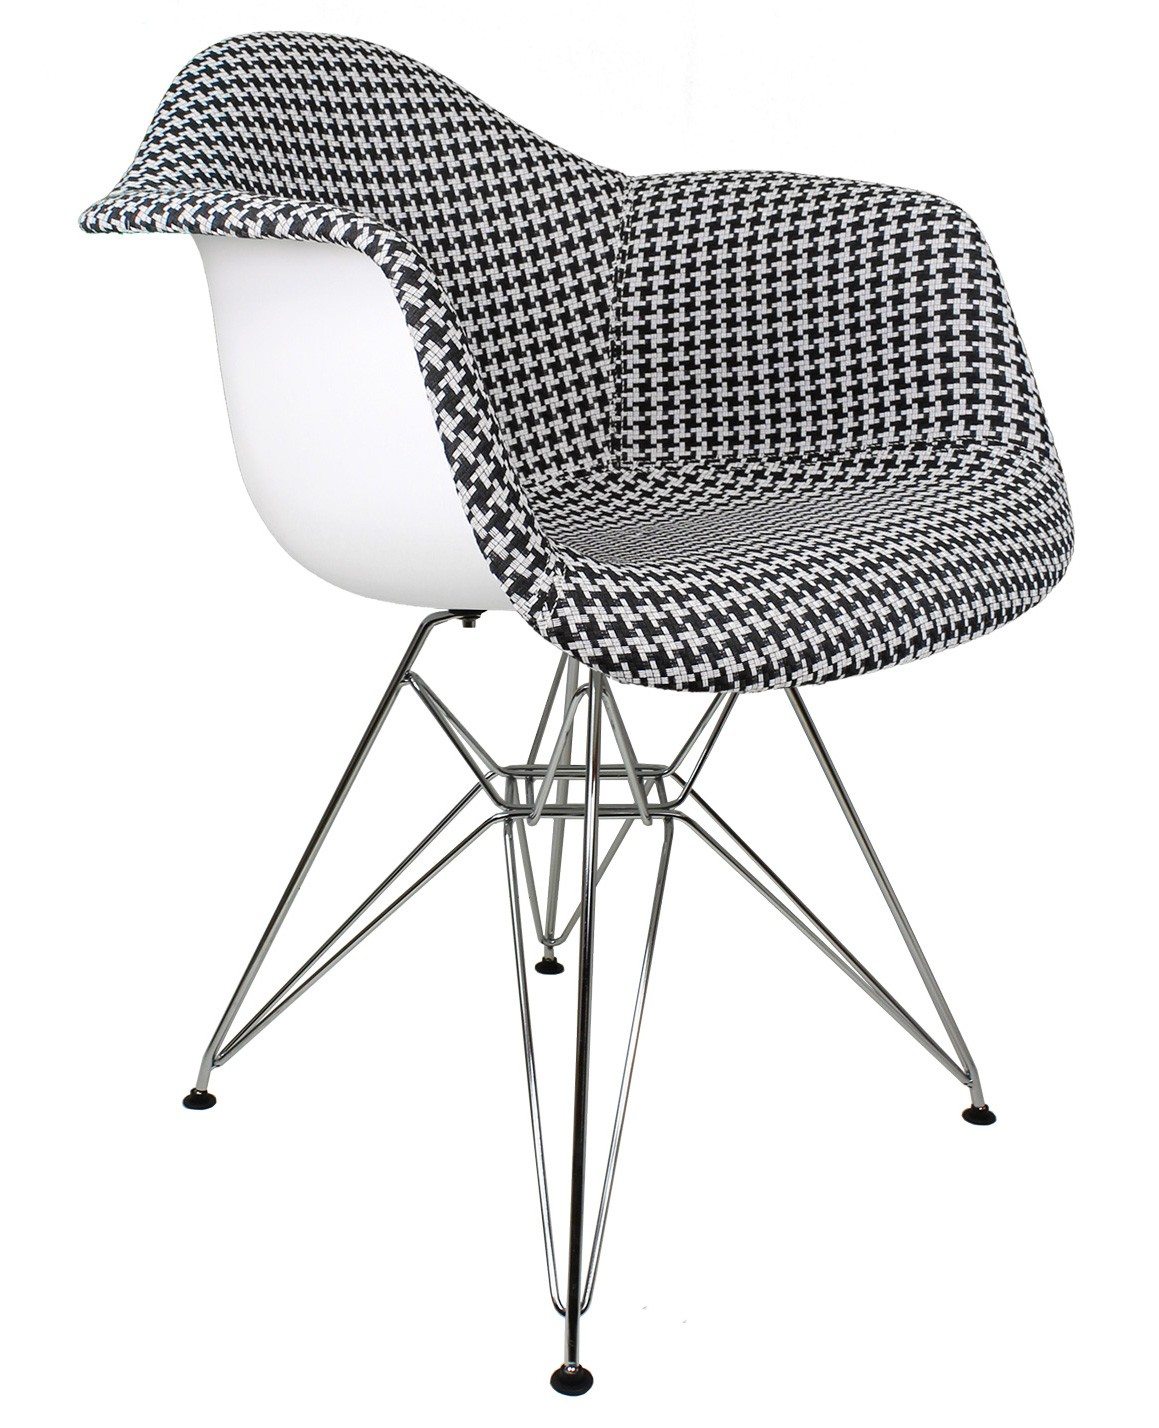 Unique Accent Chair Designer Houndstooth Pattern Woven Fabric Upholstered